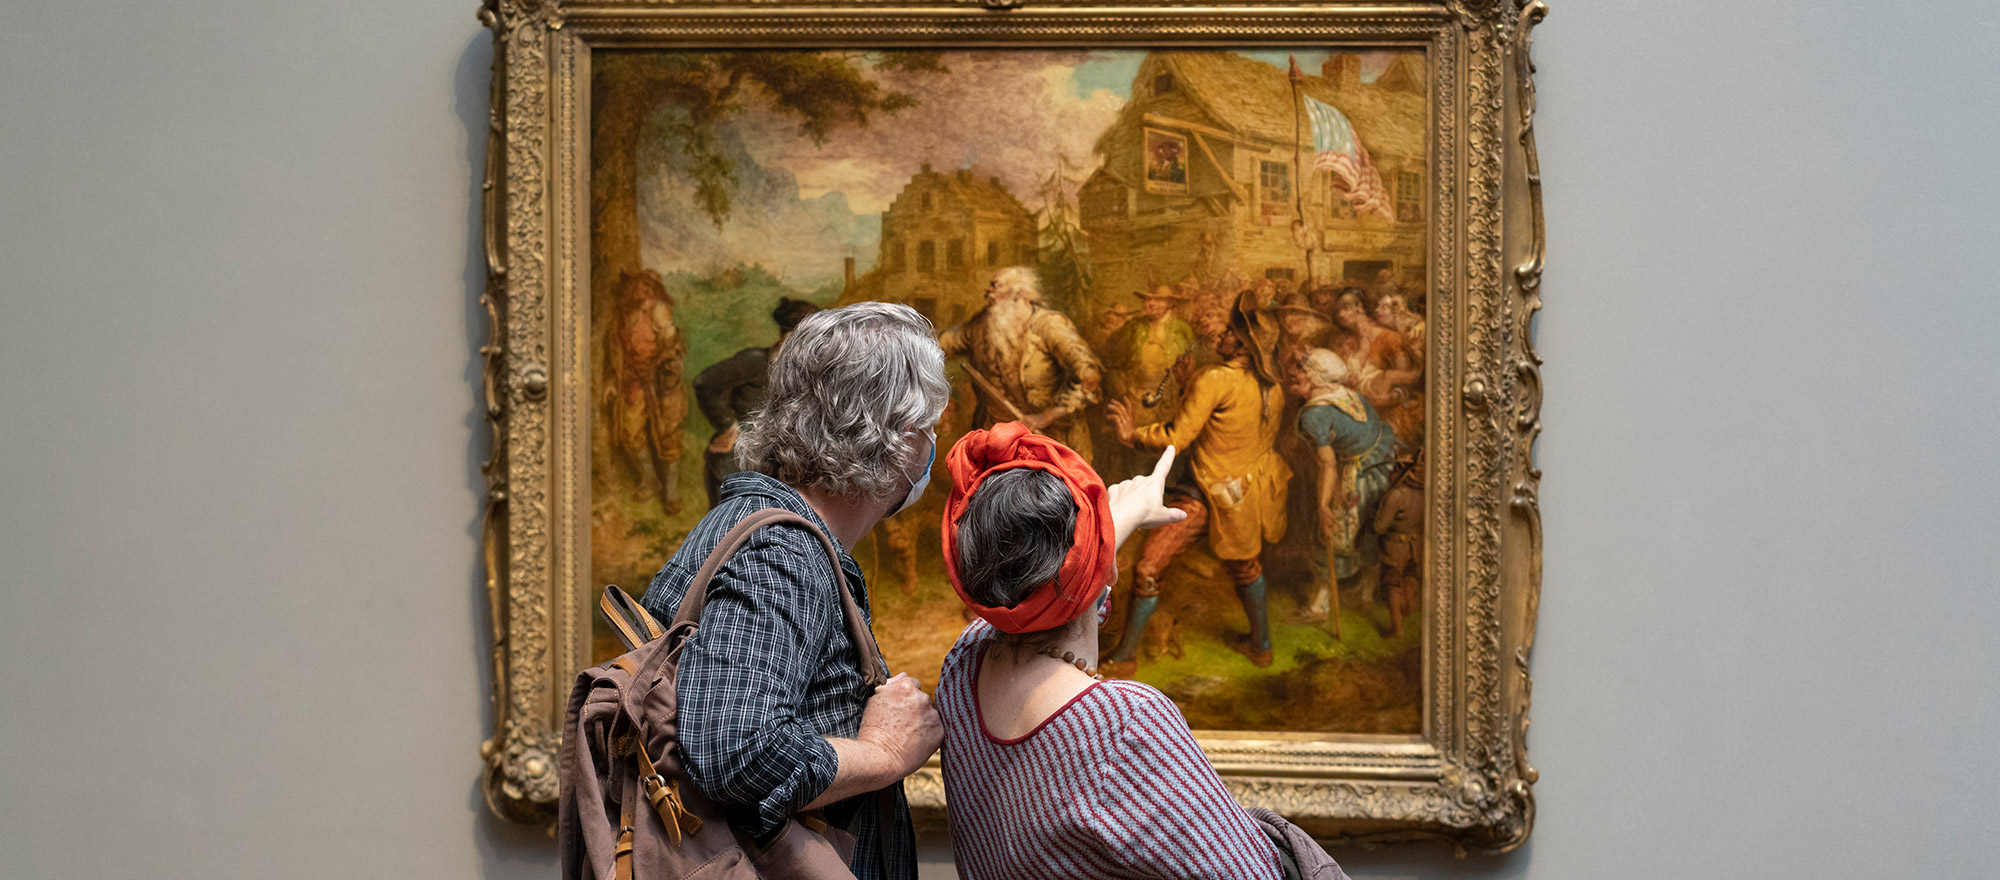 2 museum visitors, a man and a woman, looking at painting. The woman is pointing at the painting.